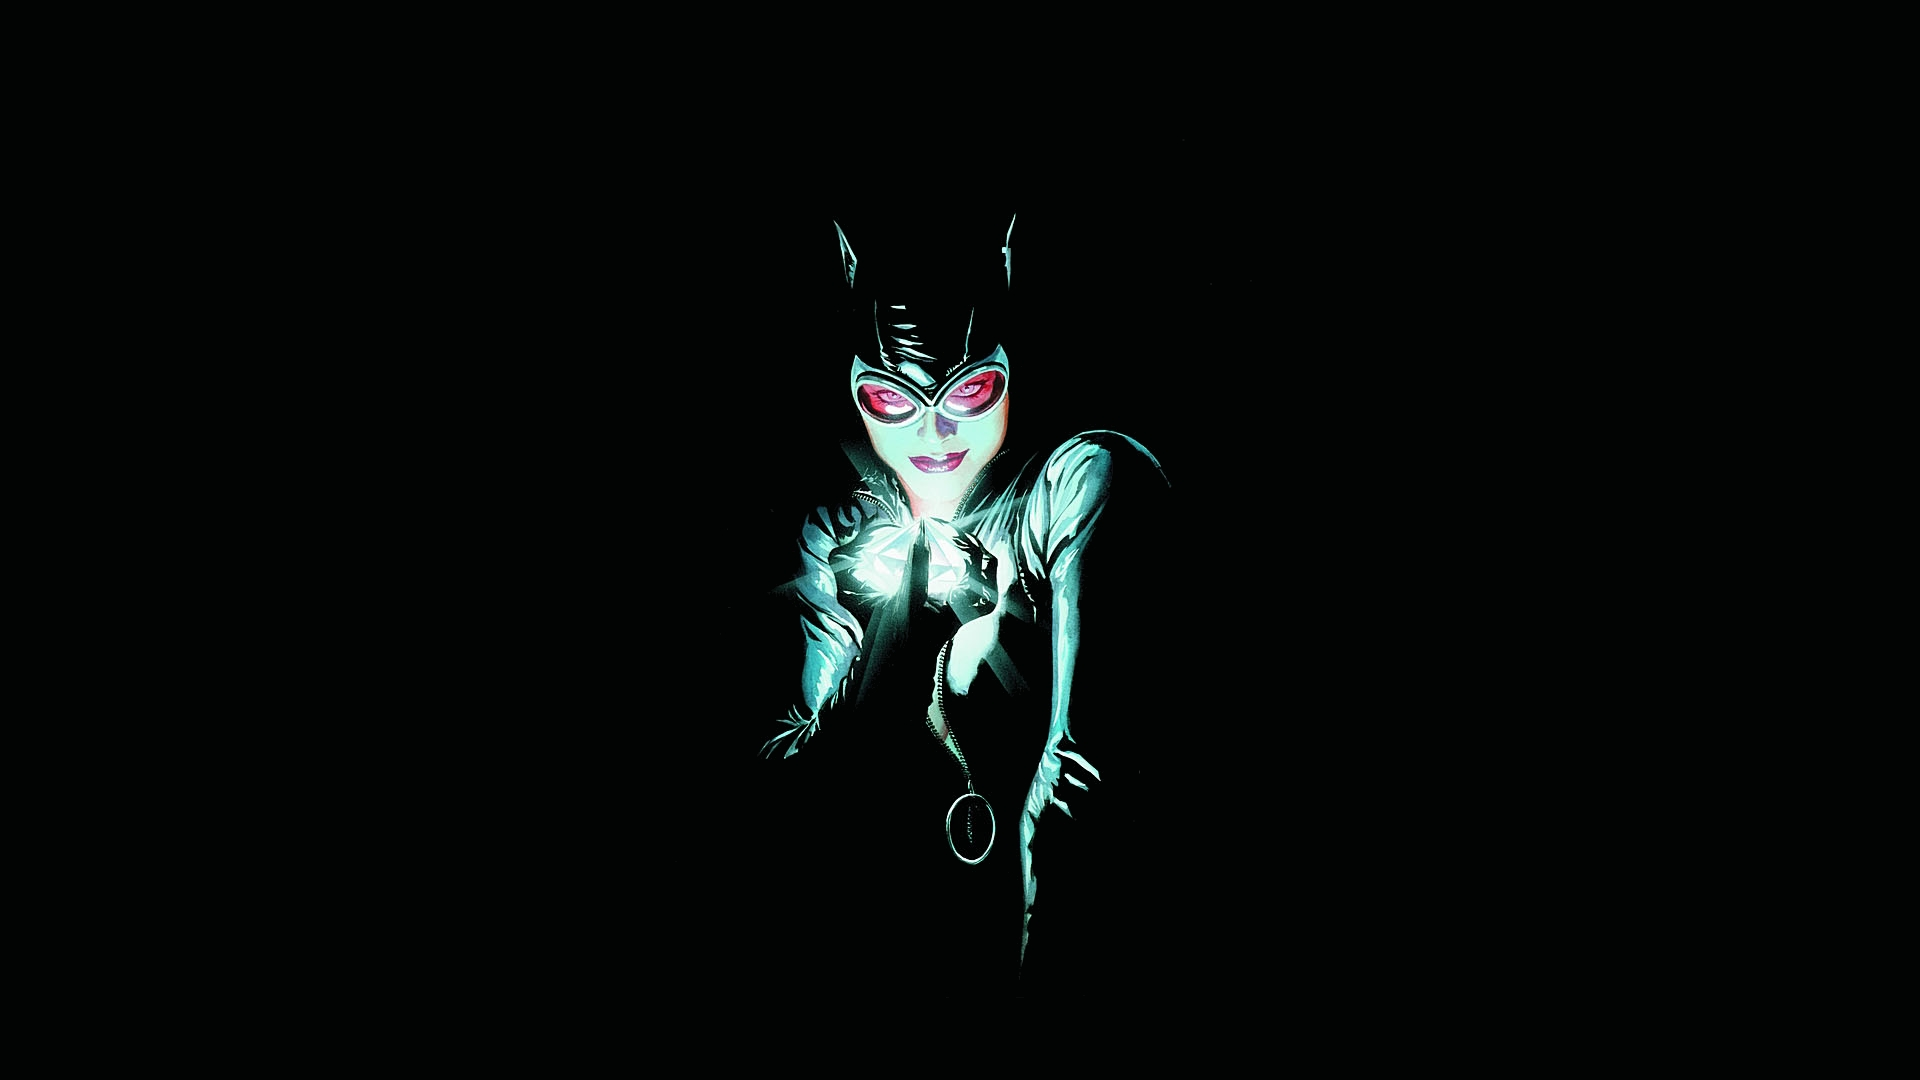 Catwoman Computer Wallpapers Desktop Backgrounds 1920x1080 ID 1920x1080